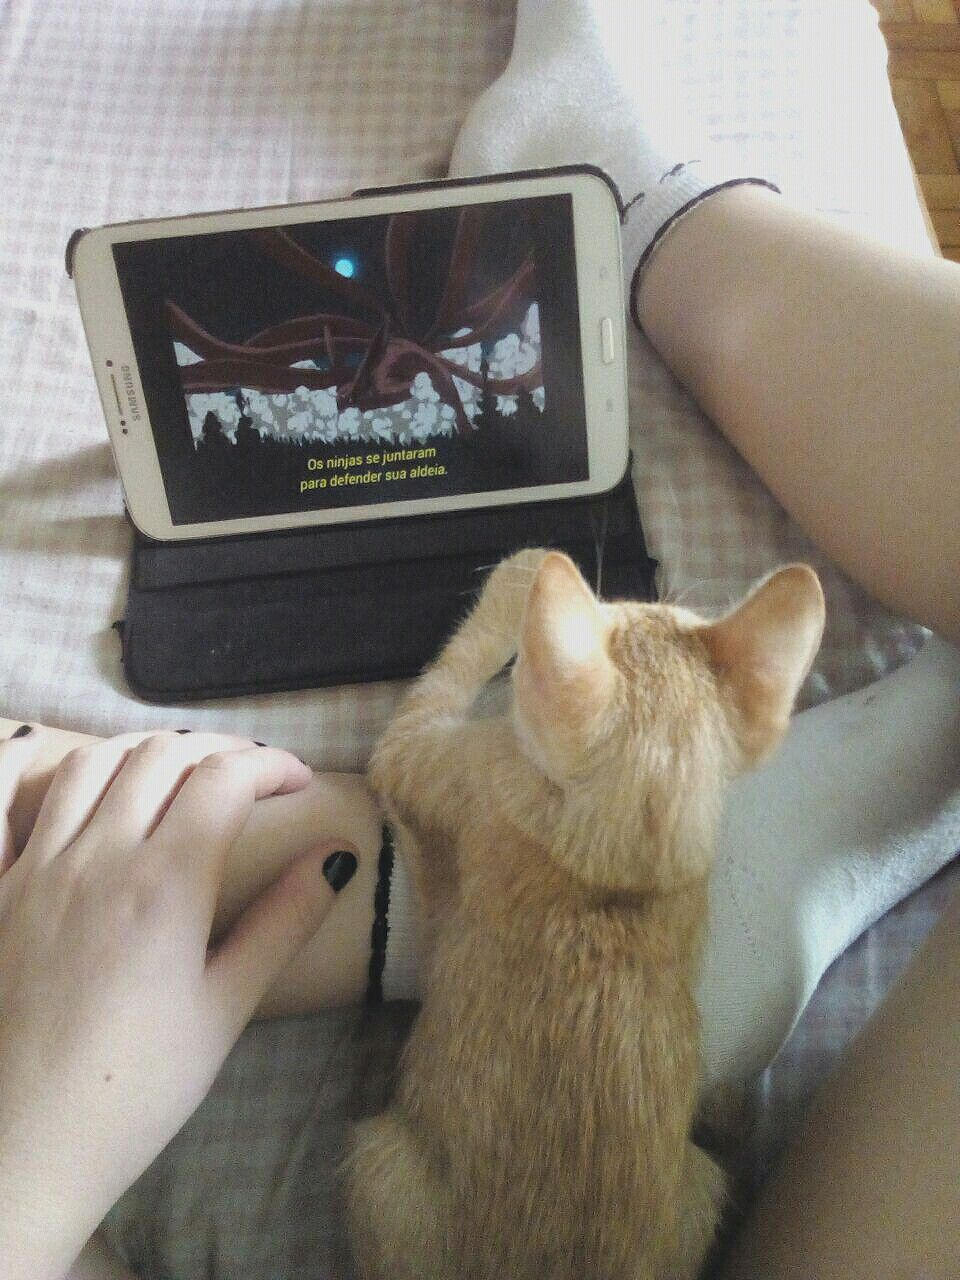 Me And My Cat Watching The Best Anime Ever Naruto 3 Ps Her Name Is Kurama Memes Engracados Memes Engracado